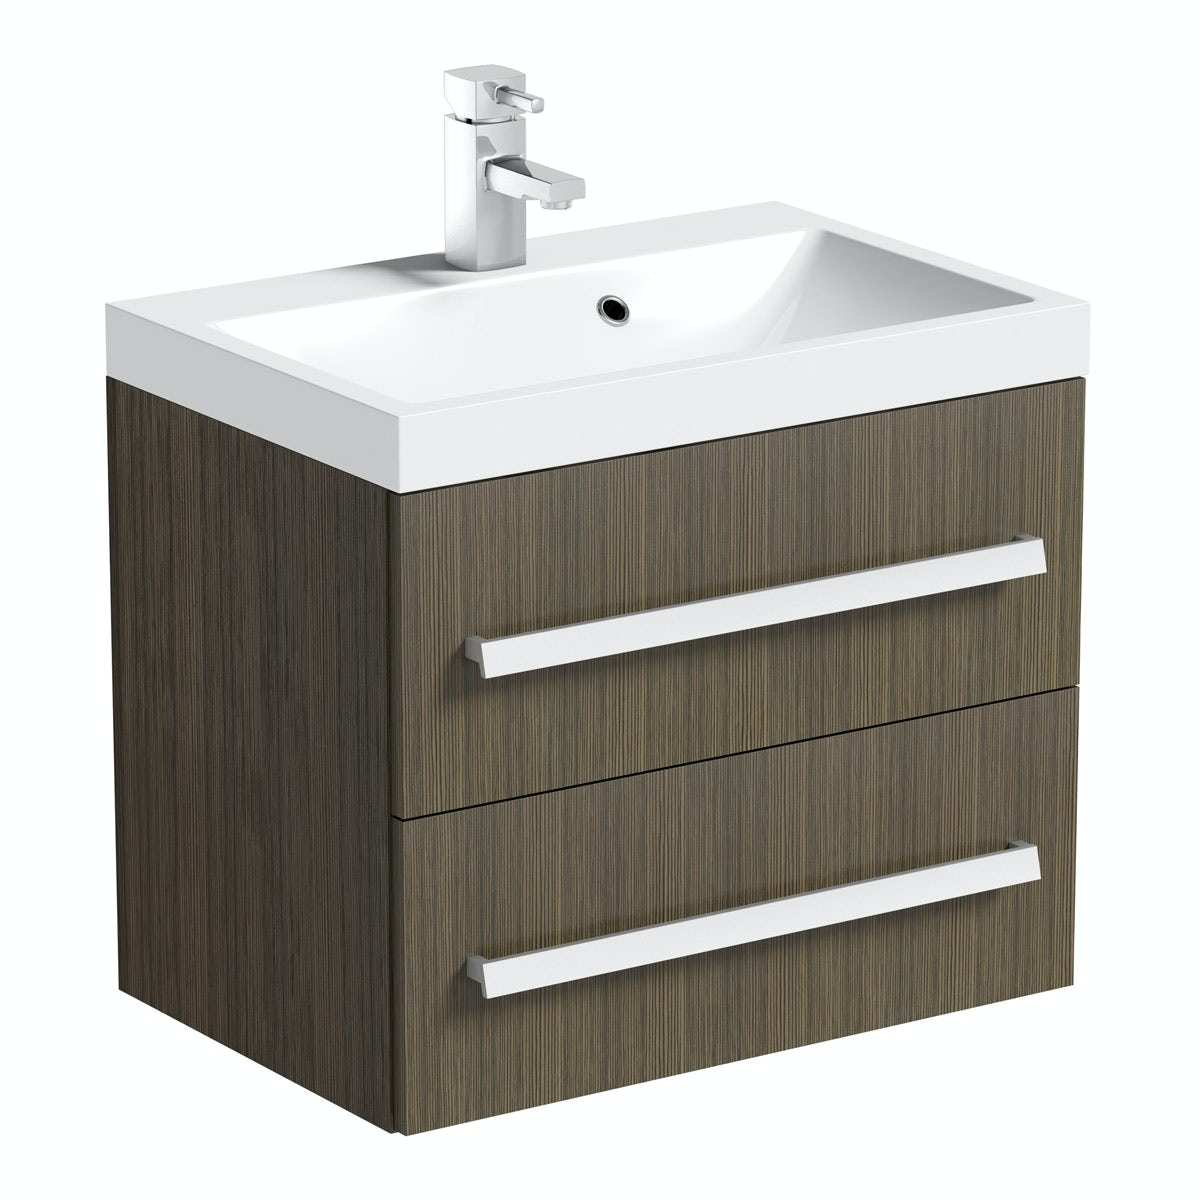 Arden walnut 600 wall hung vanity unit with basin